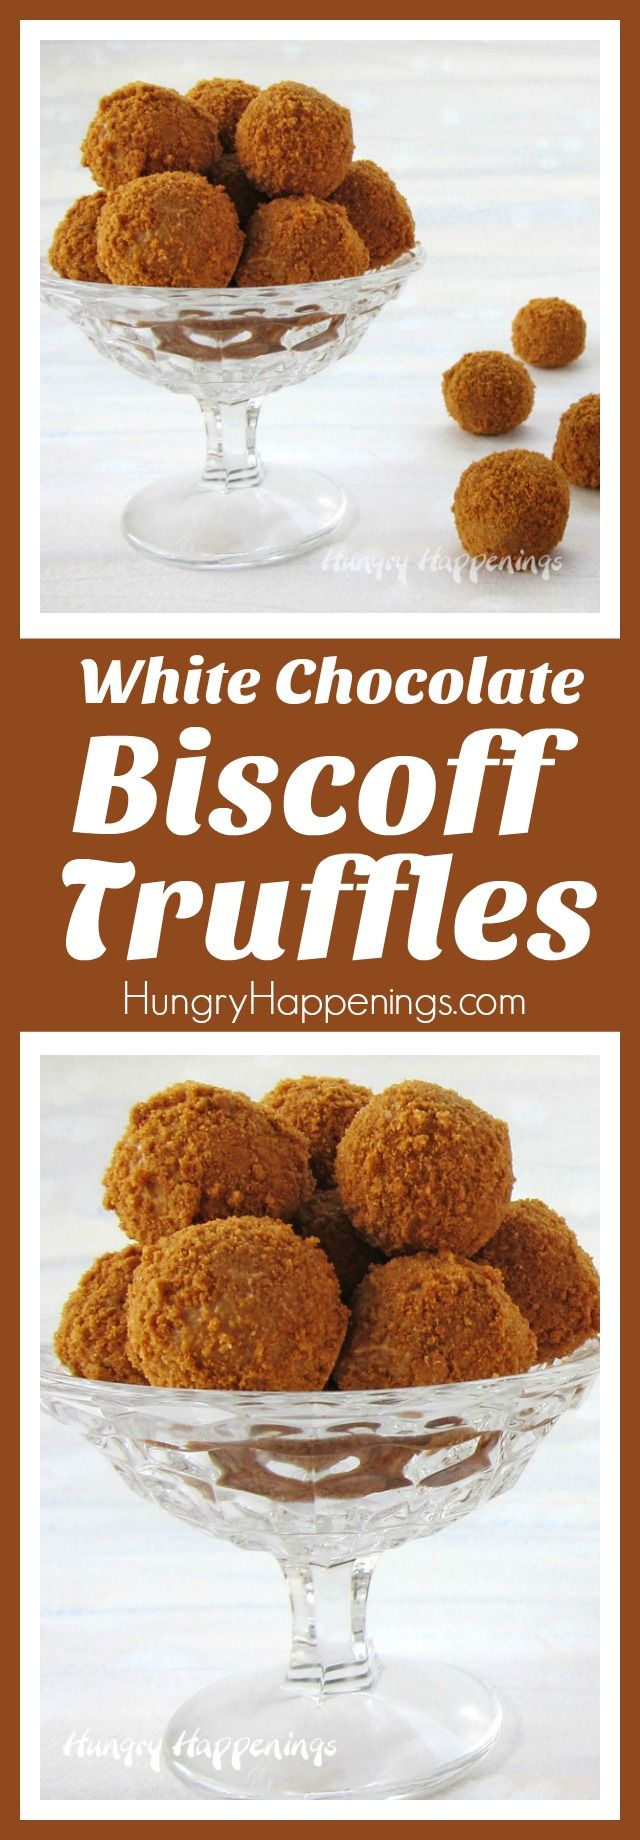 Blend white chocolate with Biscoff Cookie Butter to make these luxuriously rich and creamy truffles rolled in Biscoff Cookie Crumbs. These super easy 3-ingredient Biscoff Truffles will definitely become one of your favorite candies to make time and time again.